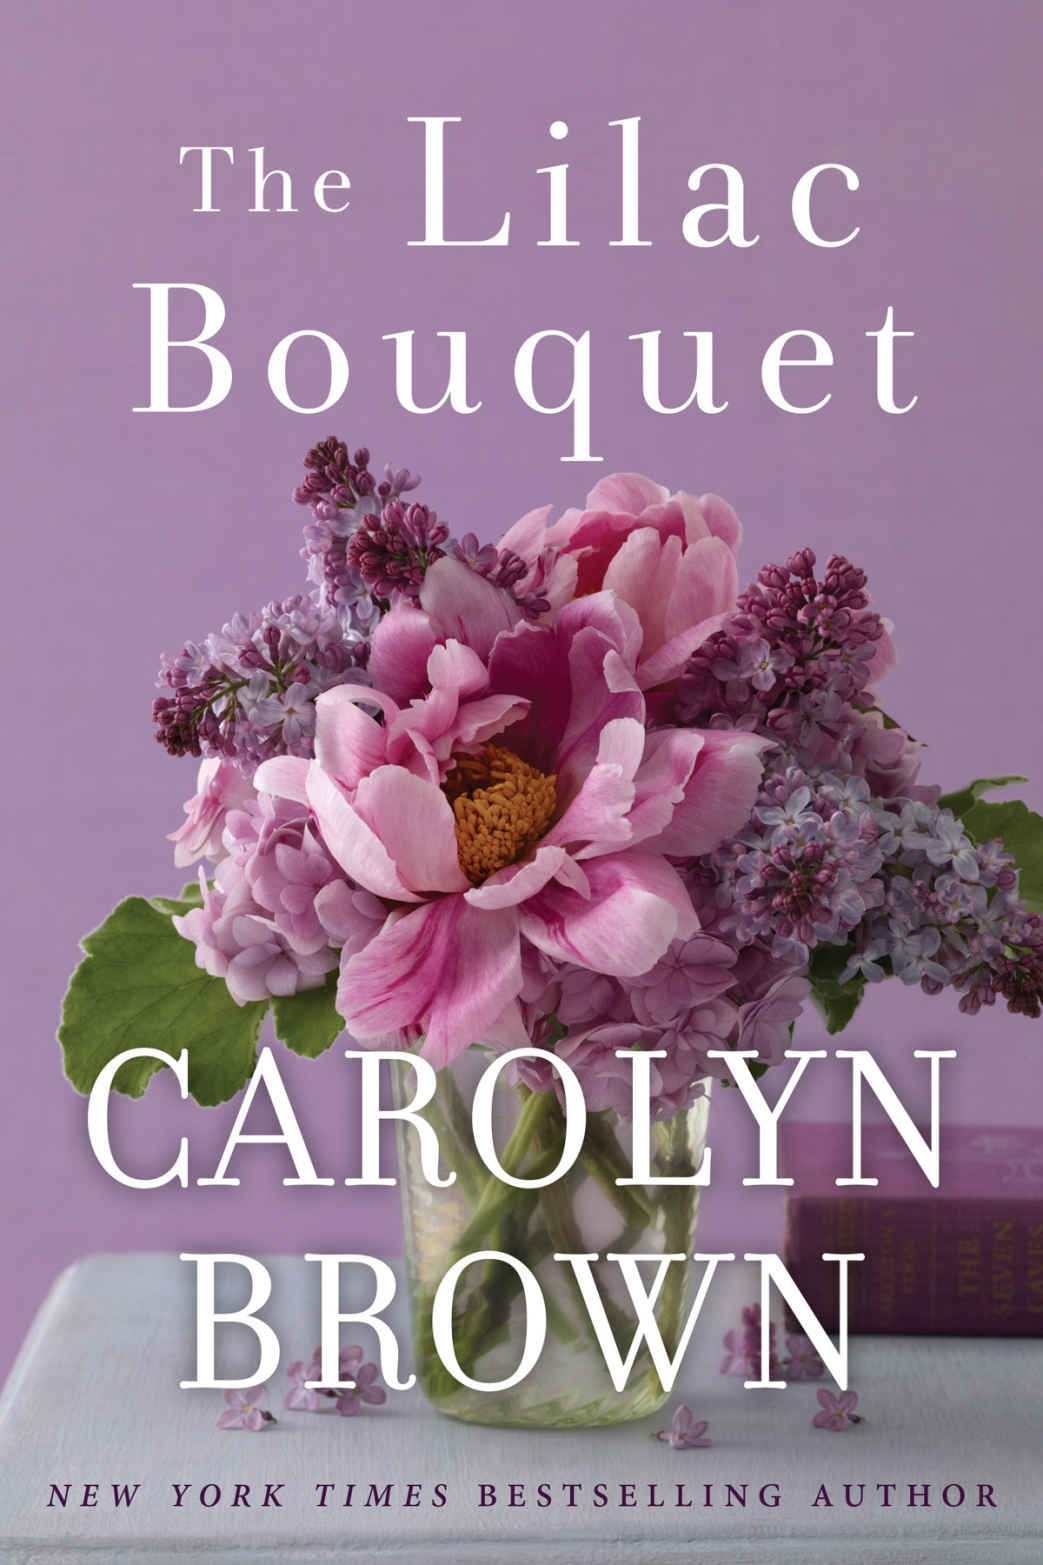 The Lilac Bouquet - Carolyn Brown [kindle] [mobi]